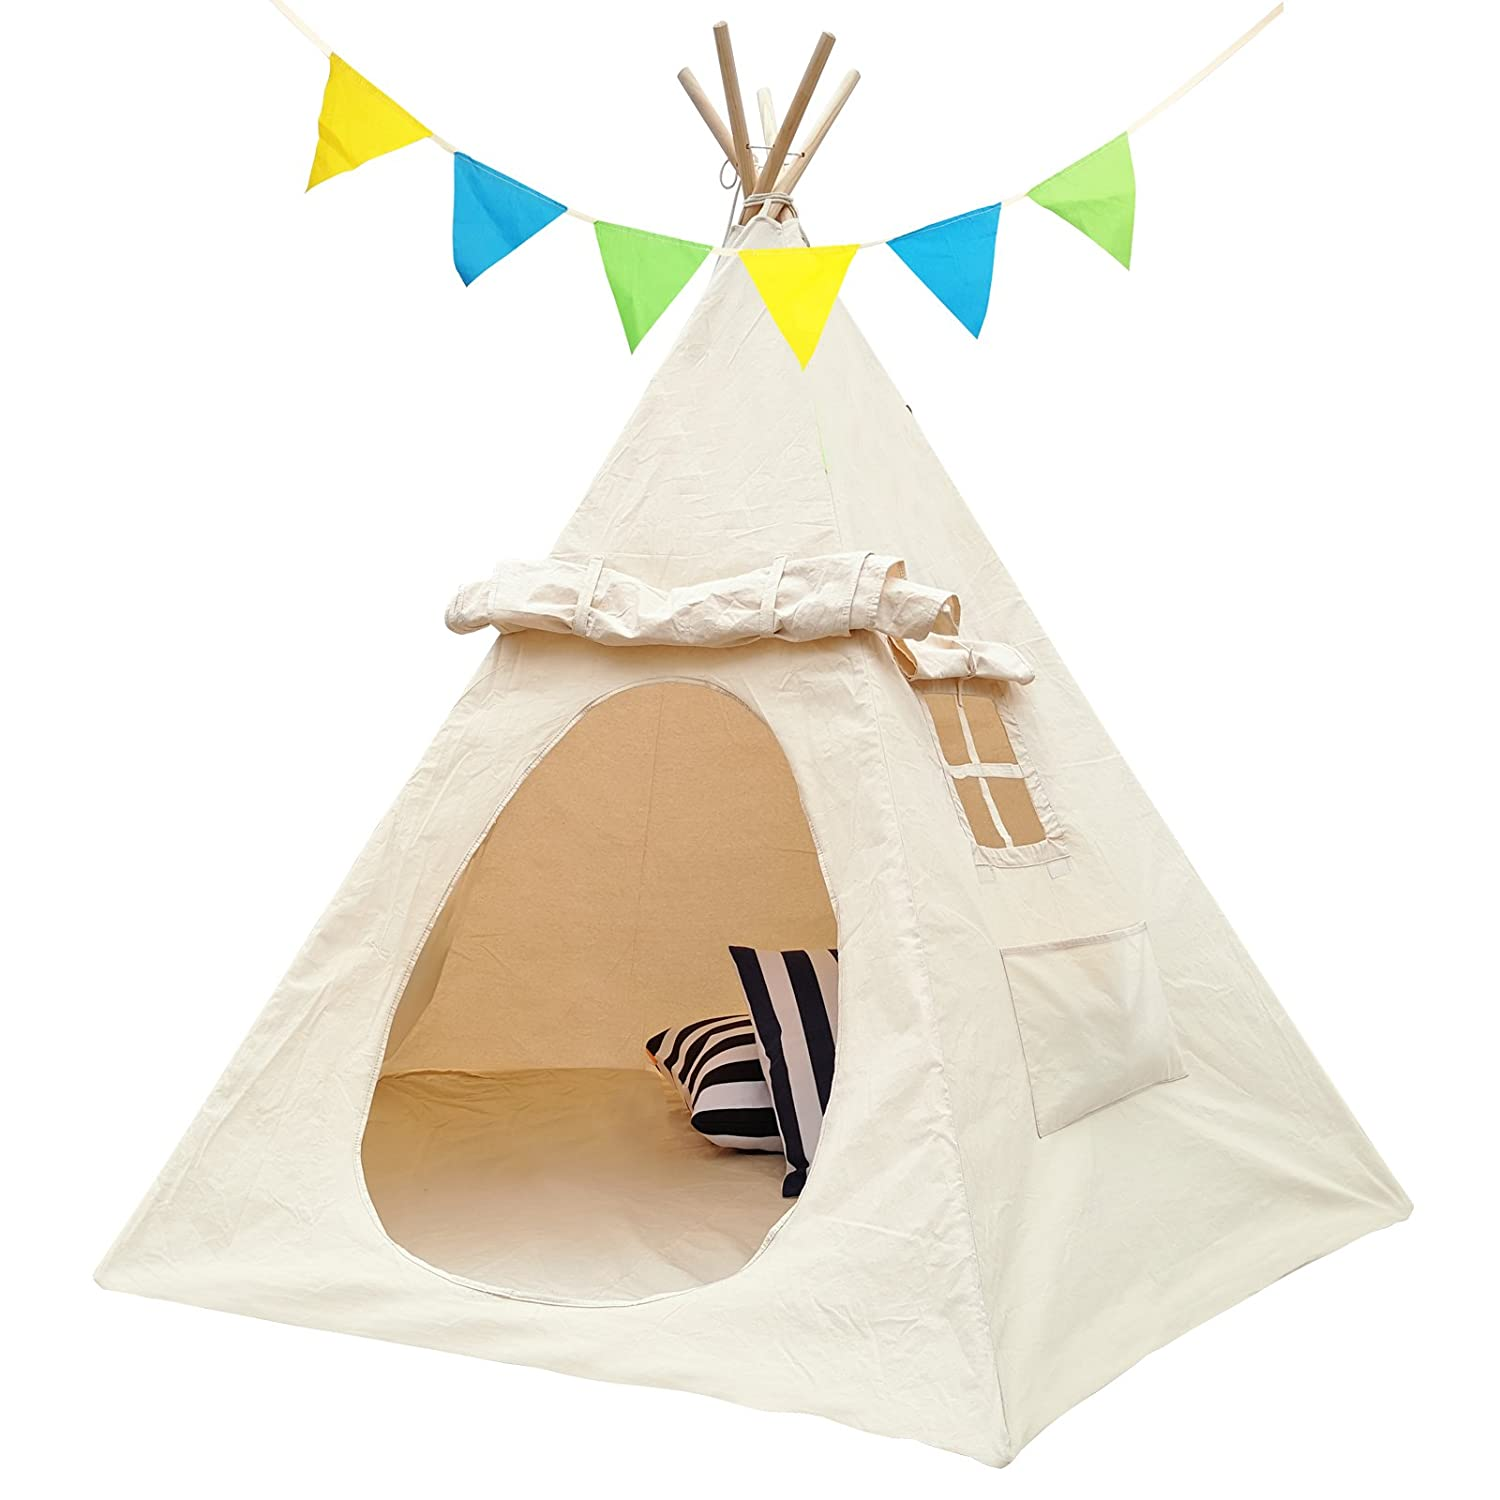 [Lavievert]Lavievert Children Playhouse Indian Canvas Teepee Kids Play House with two Windows Comes with A Canvas [並行輸入品] B01KSWDTBG